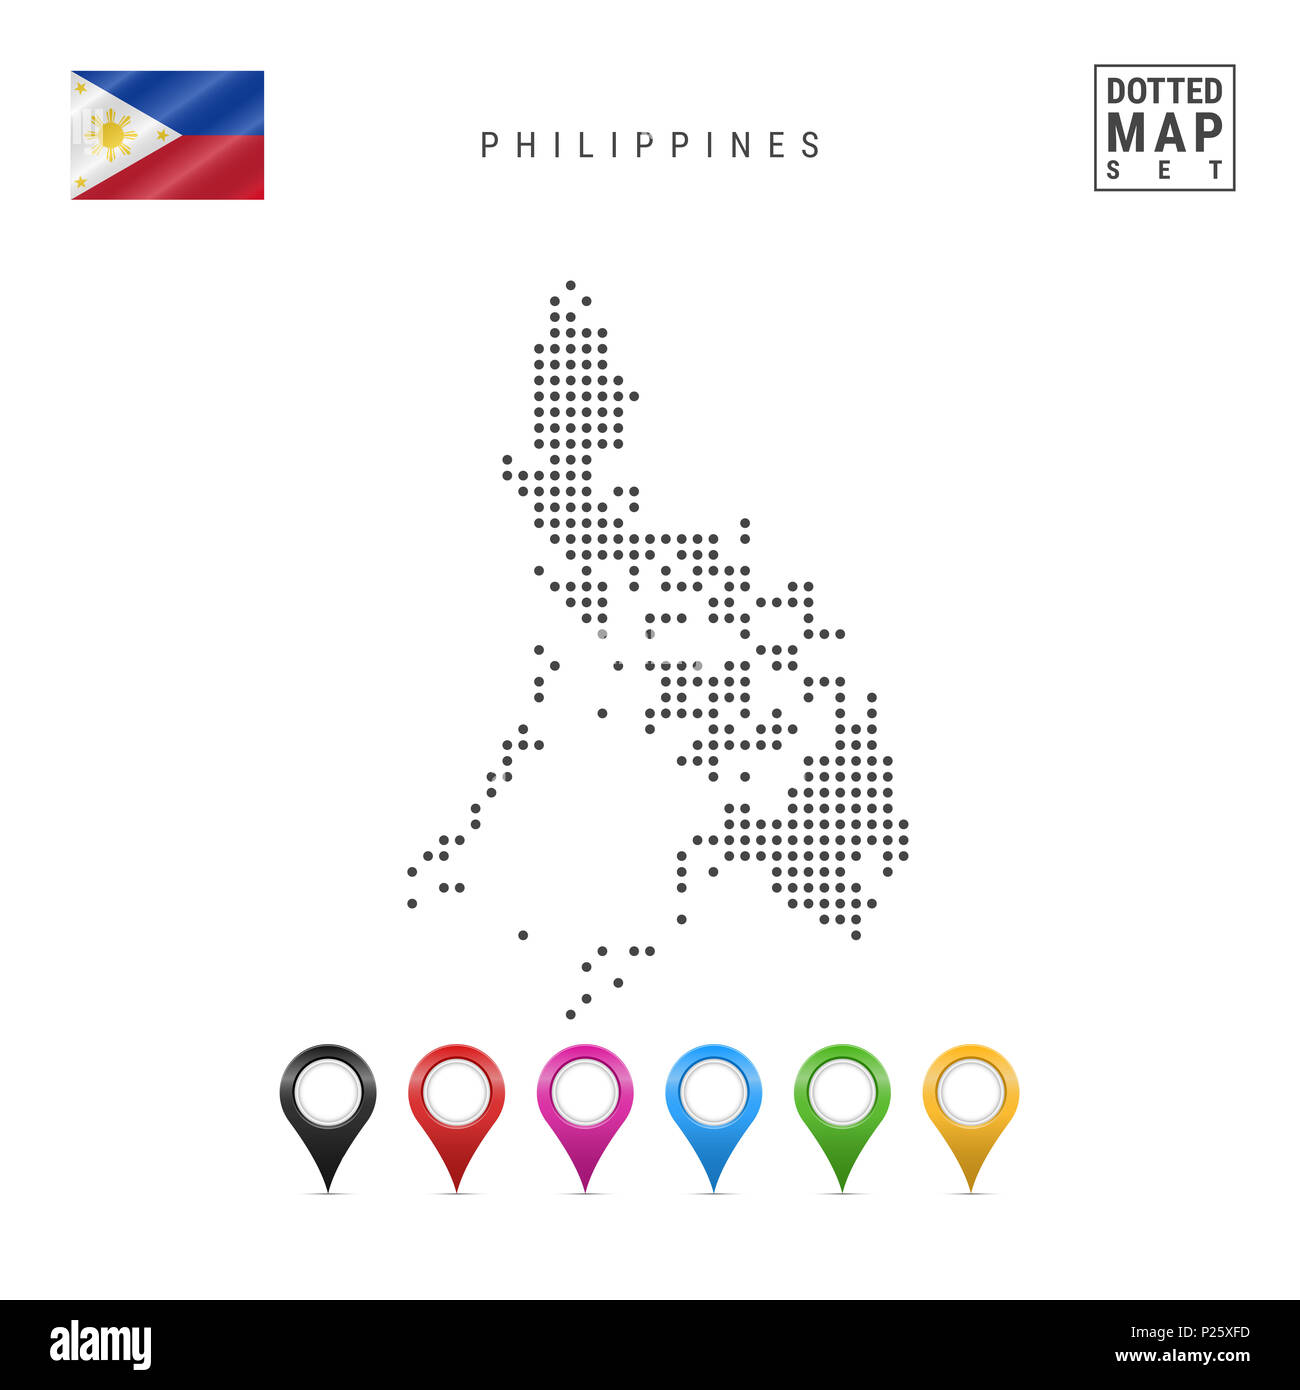 Simple Philippines Map.Dotted Map Of Philippines Simple Silhouette Of Philippines The